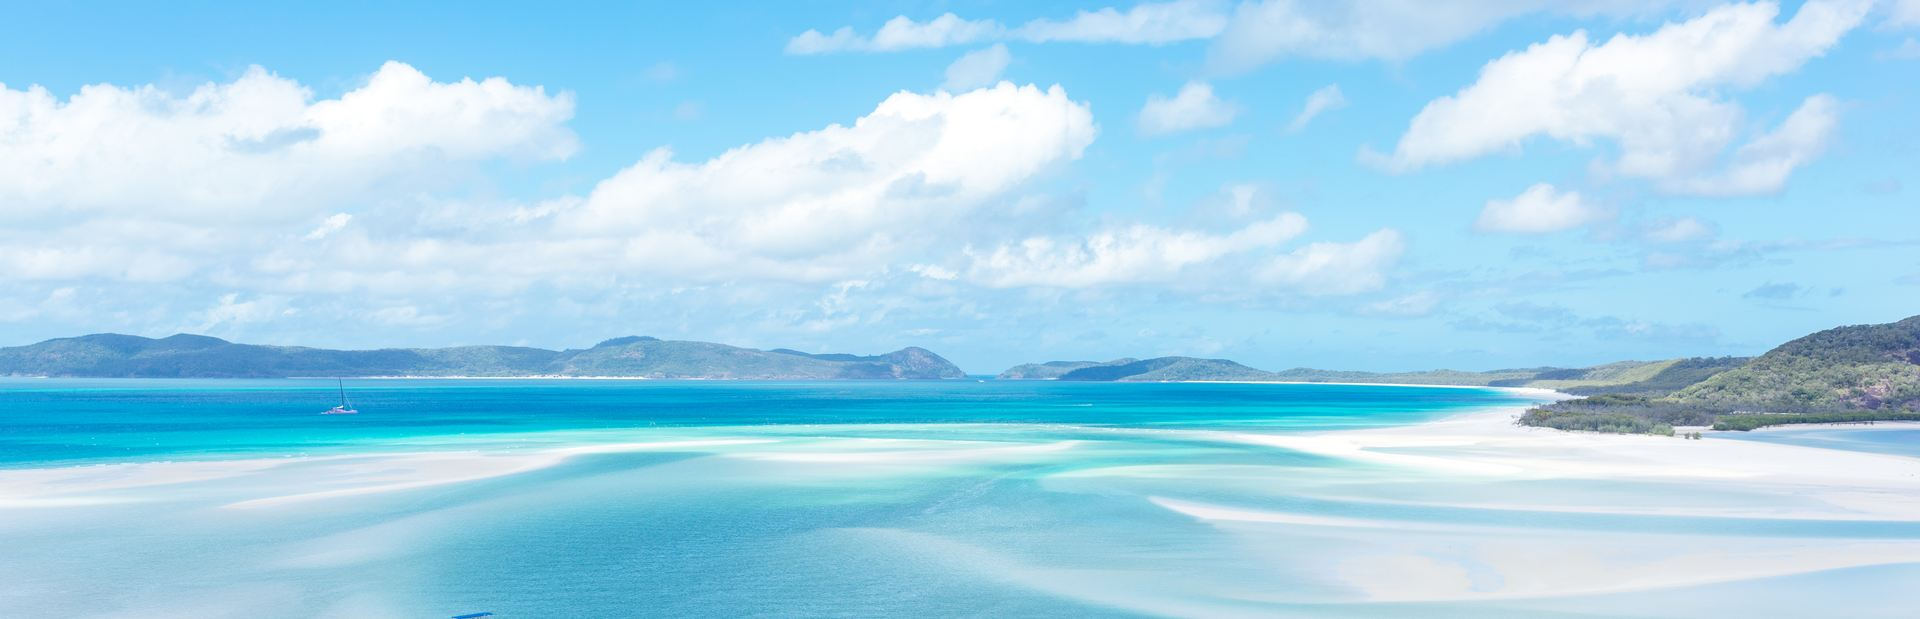 5 Reasons to Visit the Whitsunday Islands on a Luxury Yacht Charter